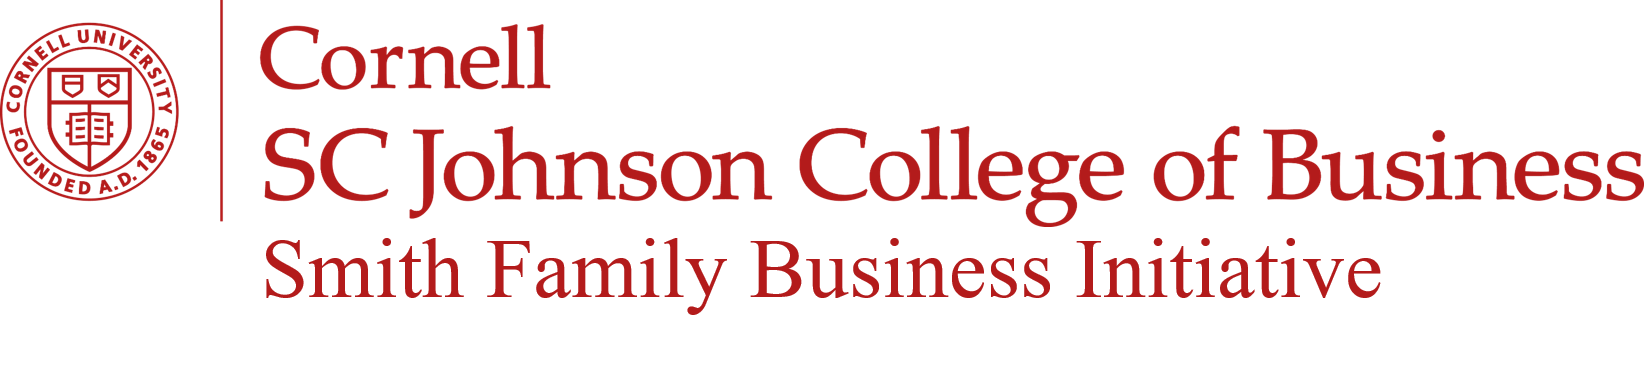 Cornell SC Johnson College of Business Smith Family Business Initiative logo